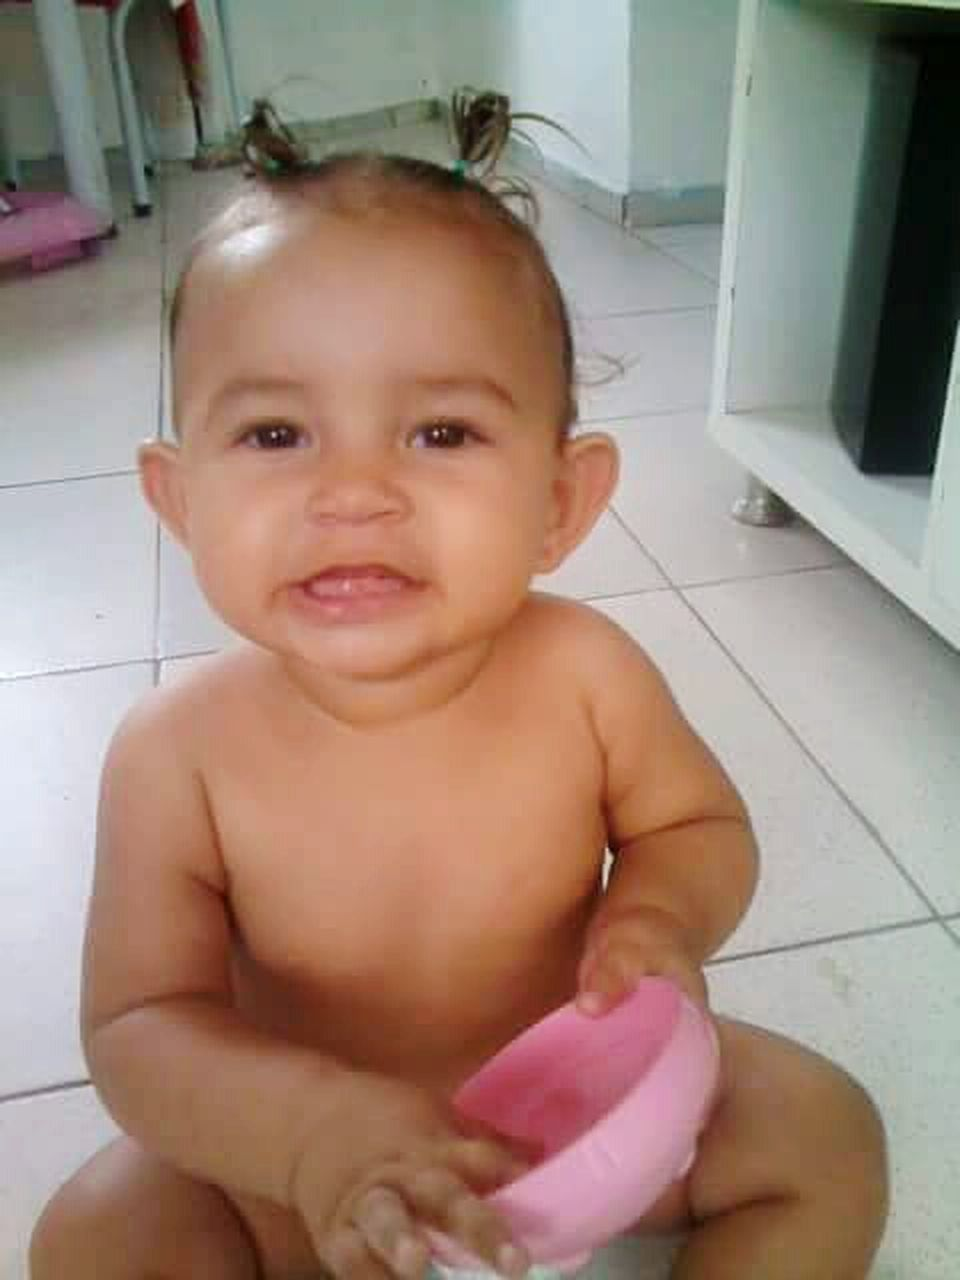 baby, babies only, domestic bathroom, shirtless, cute, innocence, indoors, childhood, bathroom, portrait, sitting, one person, looking at camera, people, domestic room, day, close-up